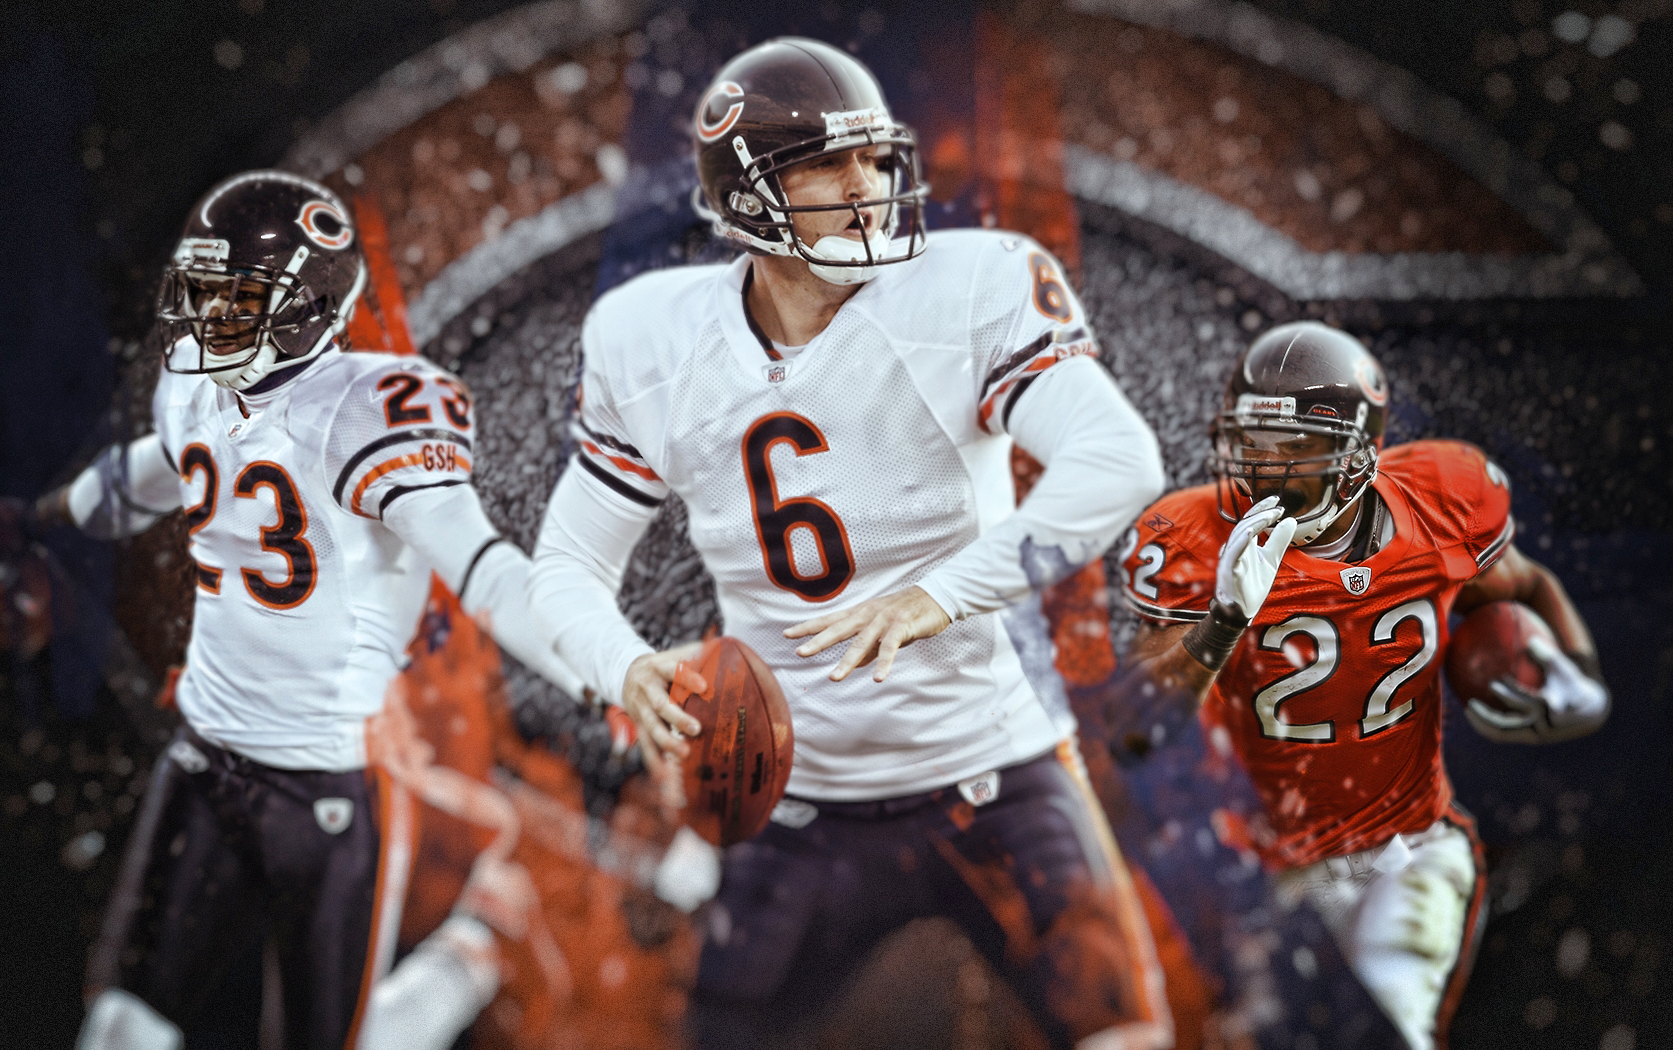 Image search Chicago Bears wallpaper 1920x1080 1673x1050